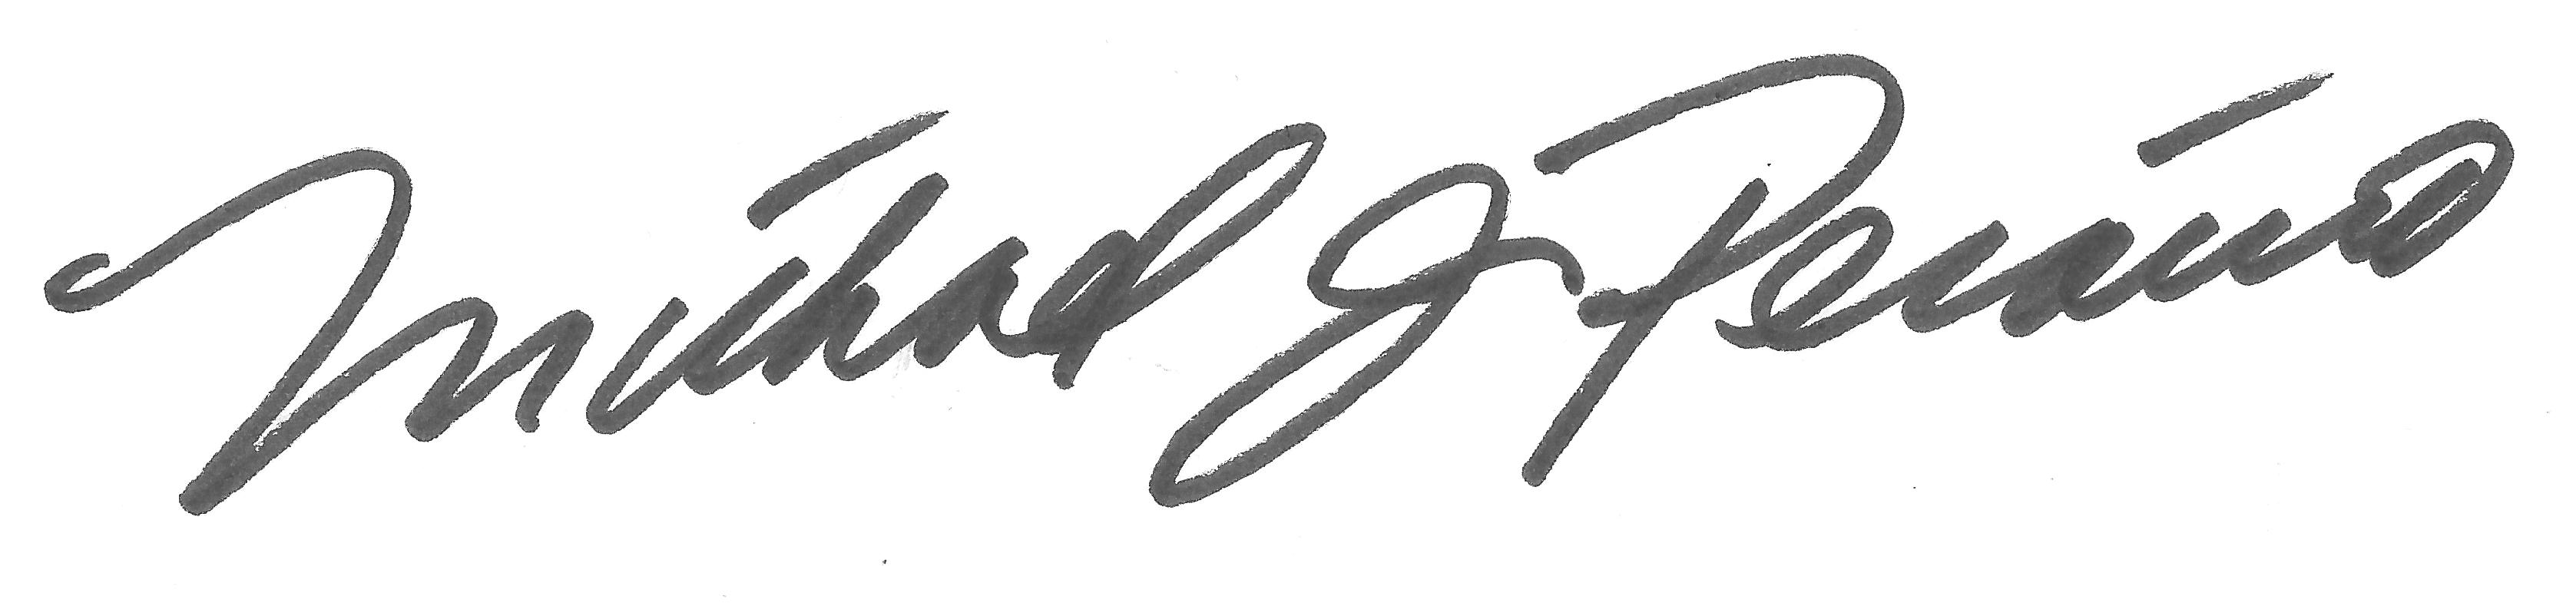 Michael Peraino's Signature